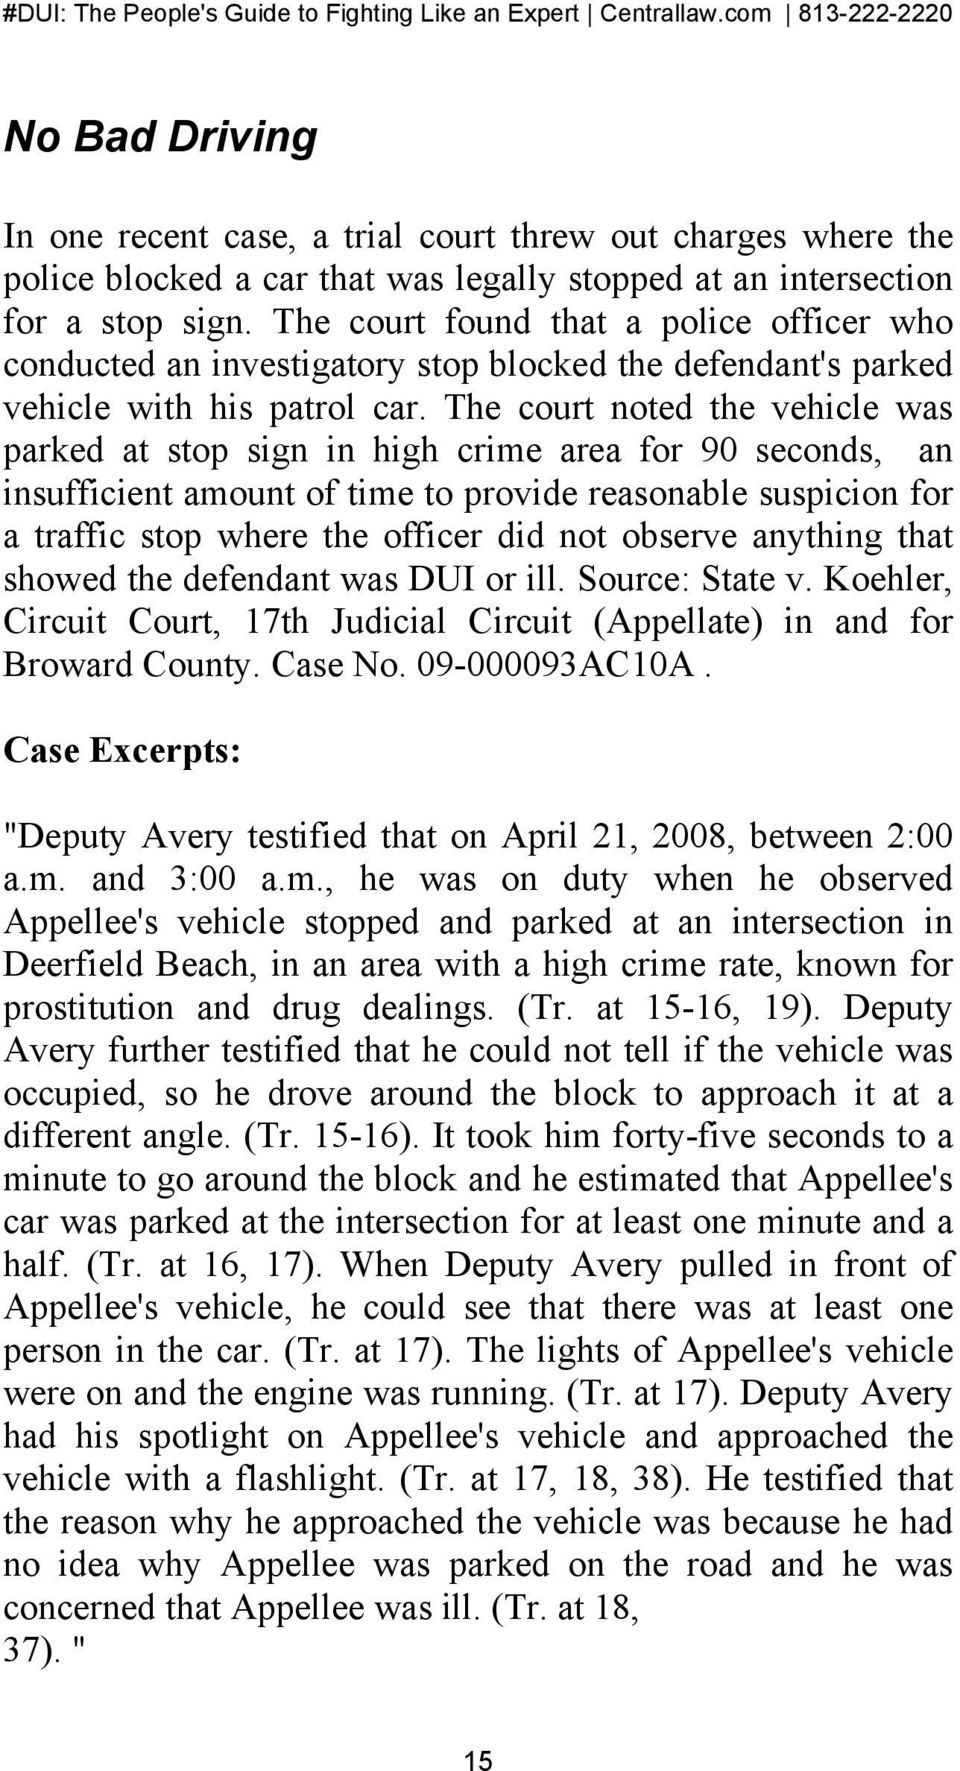 The court noted the vehicle was parked at stop sign in high crime area for 90 seconds, an insufficient amount of time to provide reasonable suspicion for a traffic stop where the officer did not